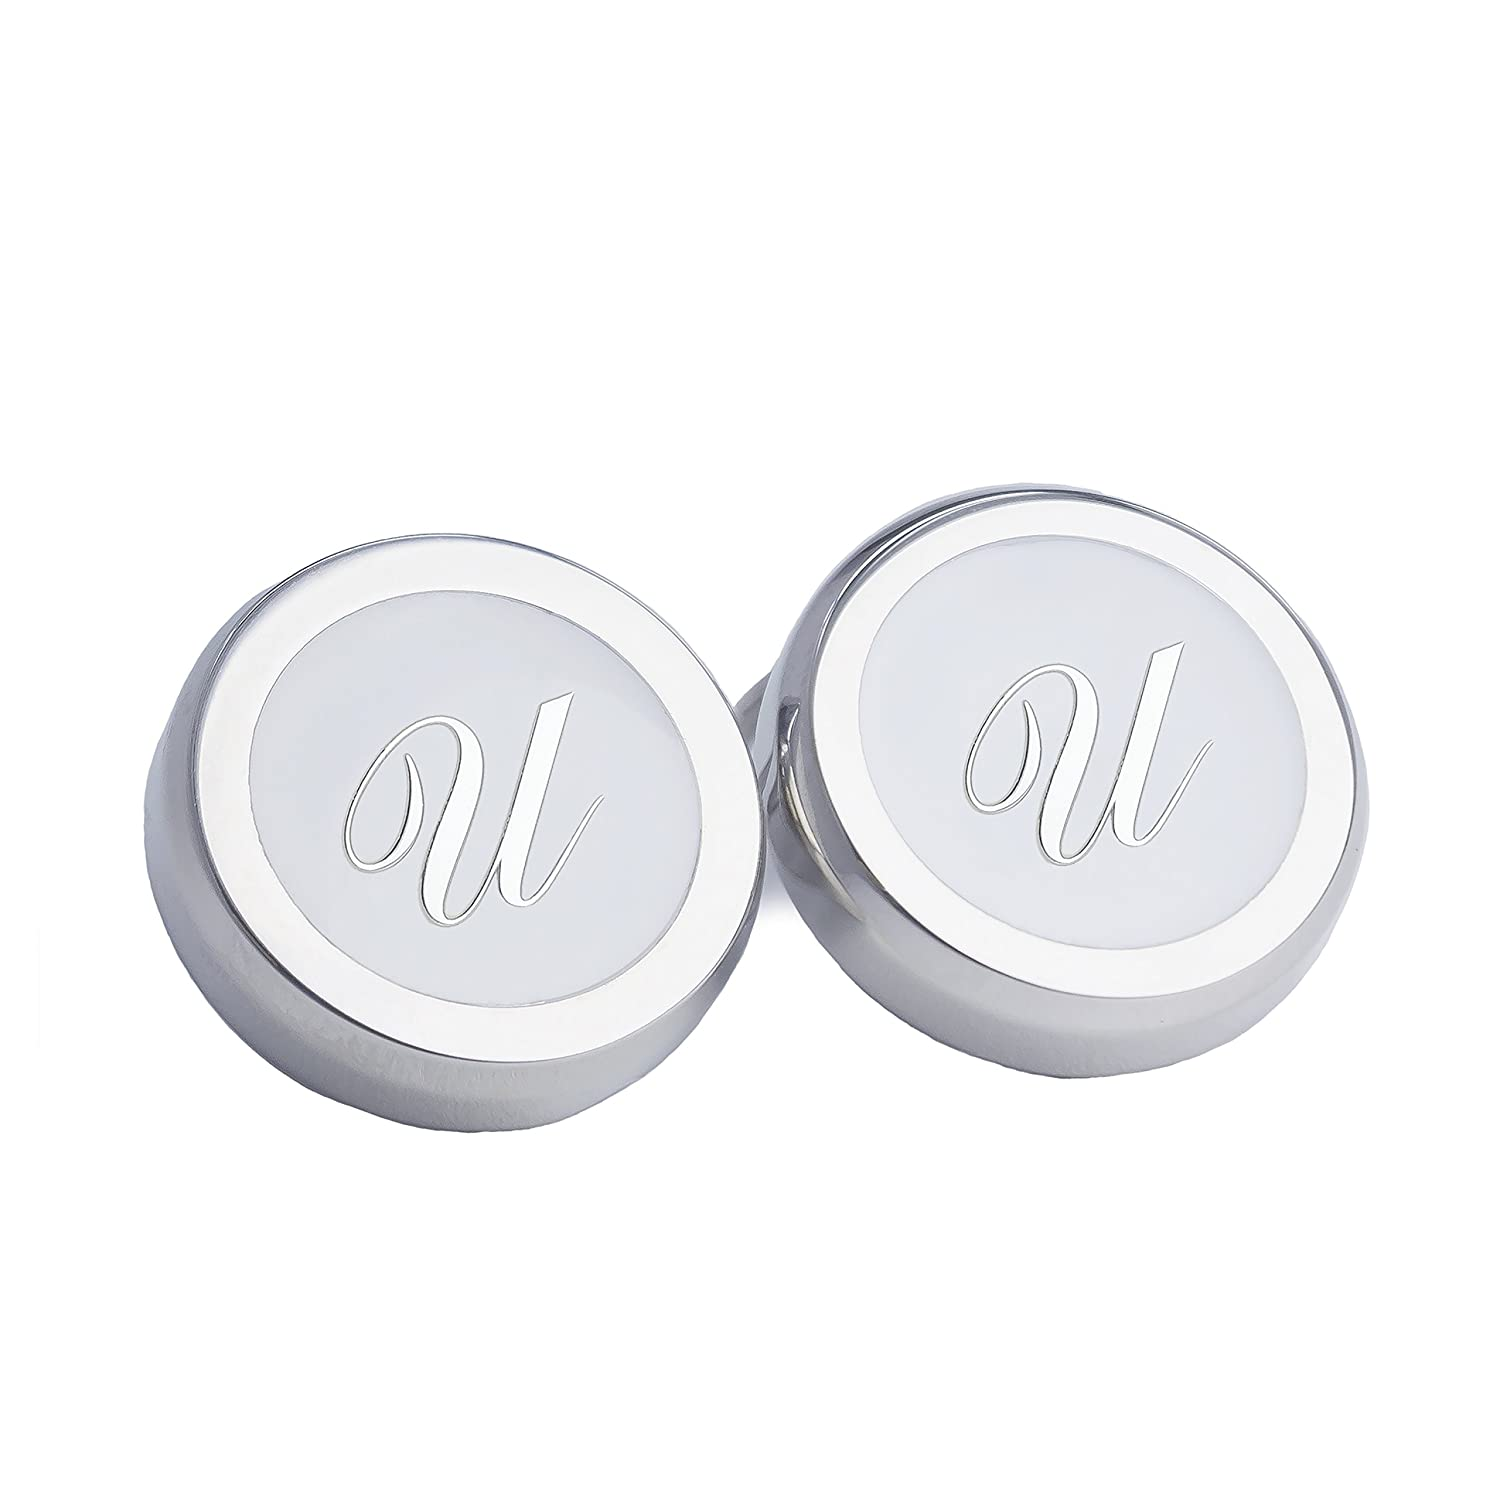 Azthom Cufflinks with LetterU White and Silver Button Covers